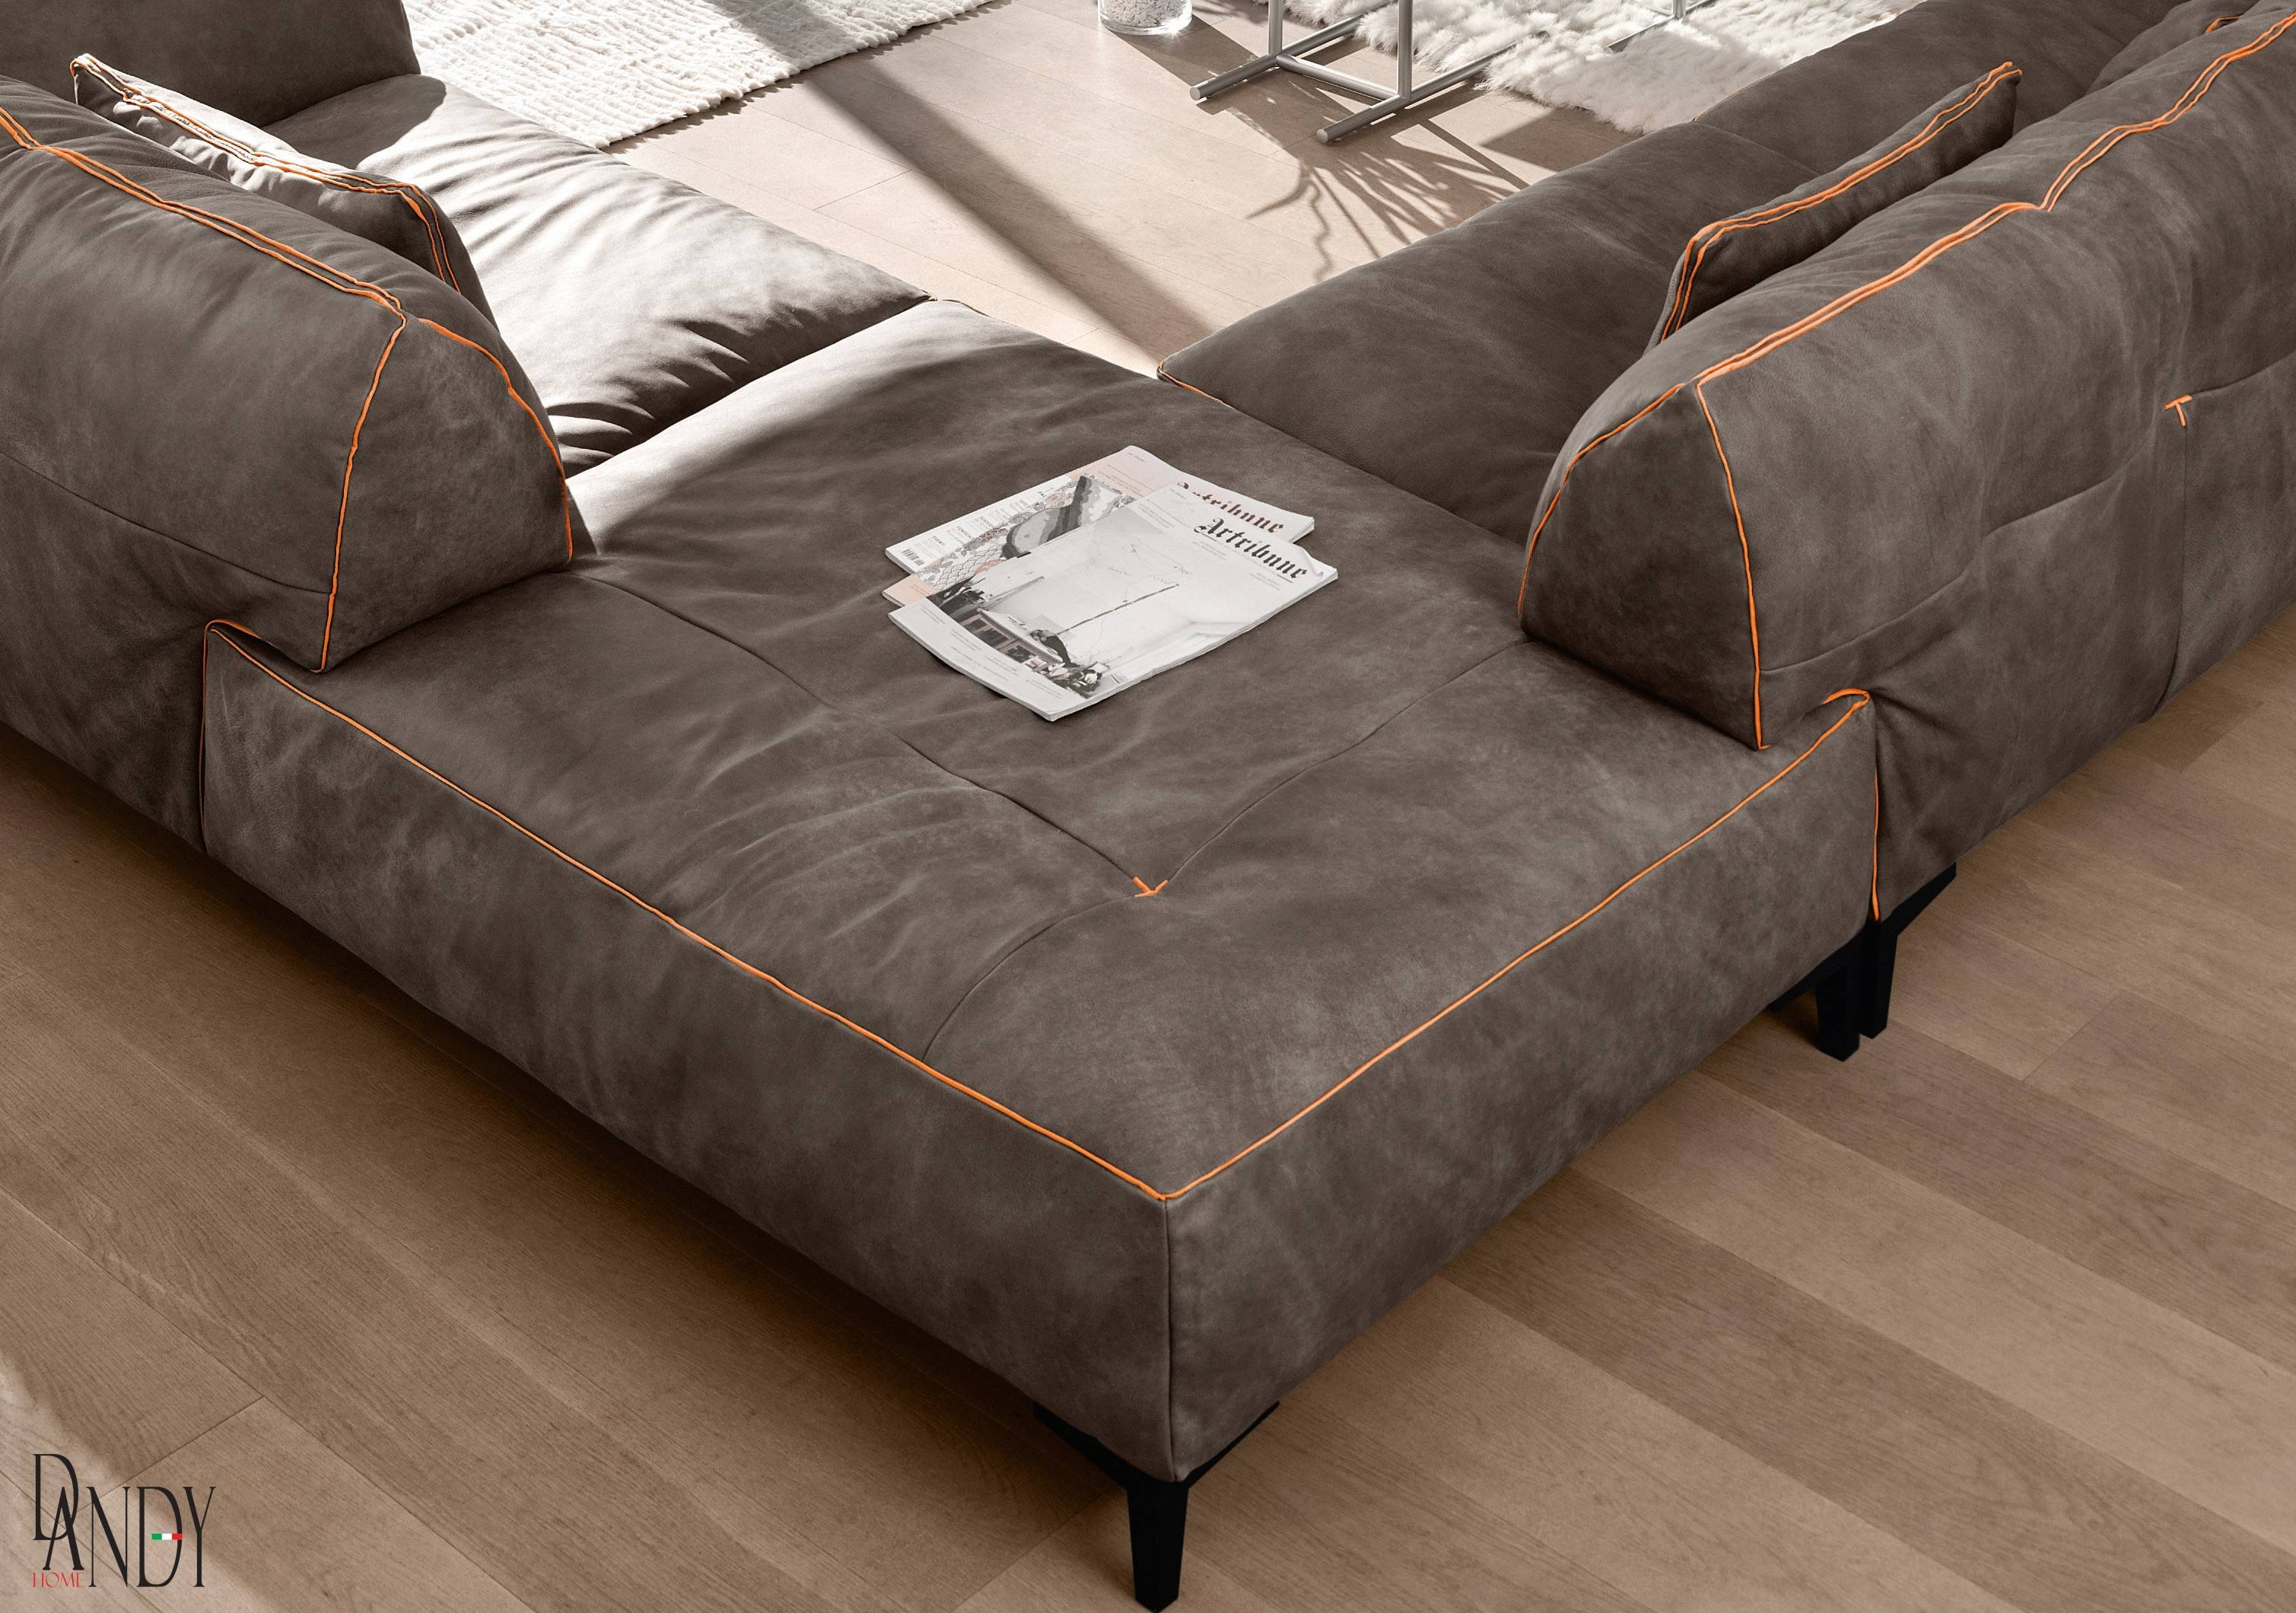 Gamma Arredamenti - Neo Furniture inside High End Leather Sectional Sofa (Image 3 of 25)